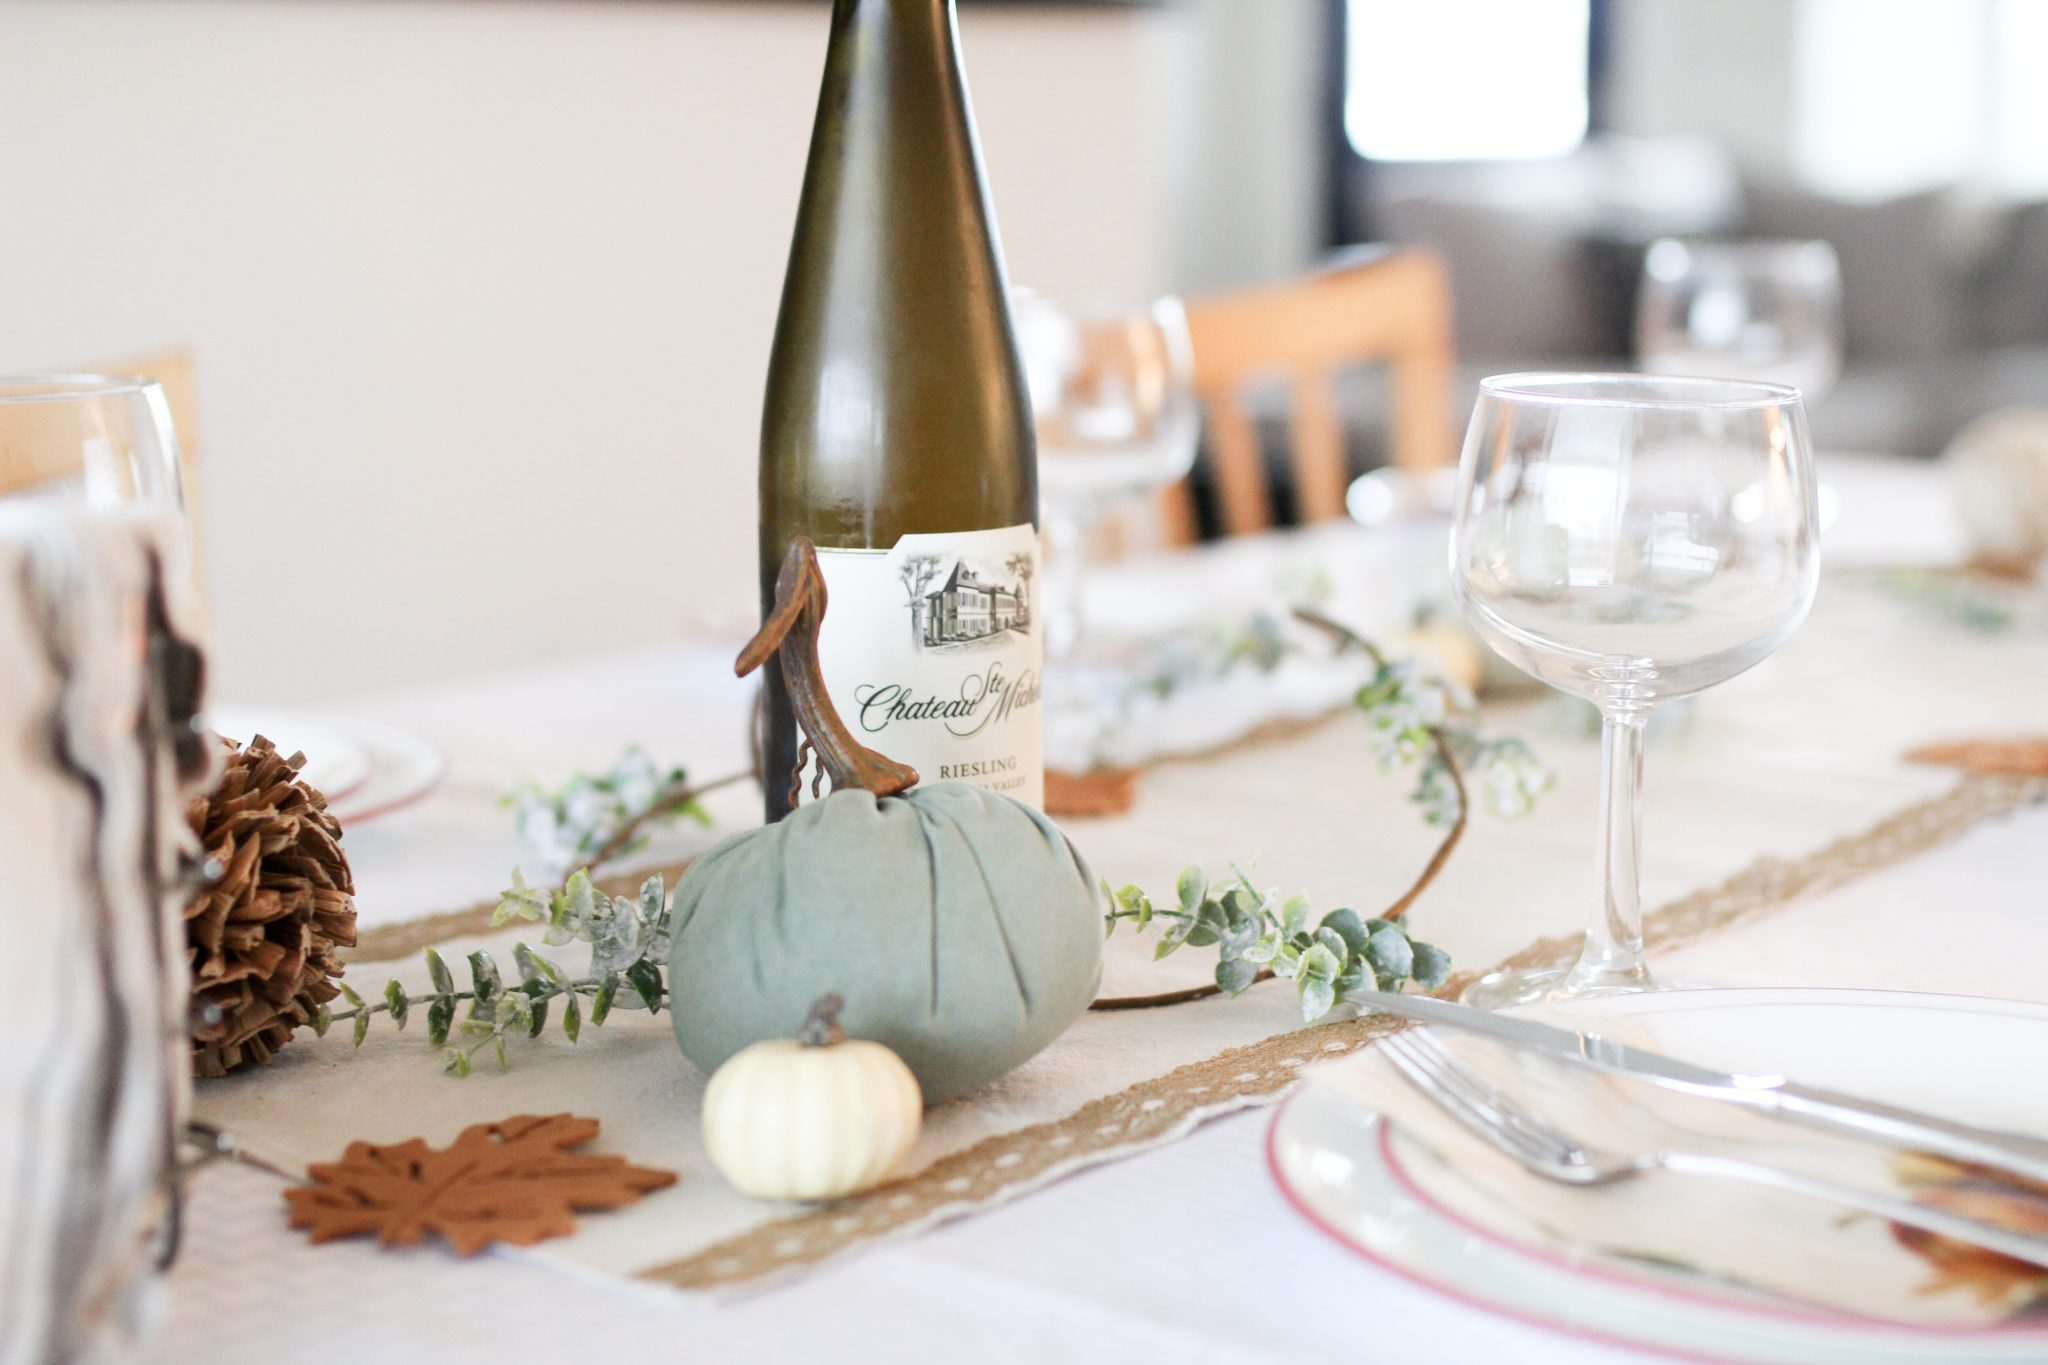 HOW TO CREATE A SIMPLE HOLIDAY TABLESCAPE